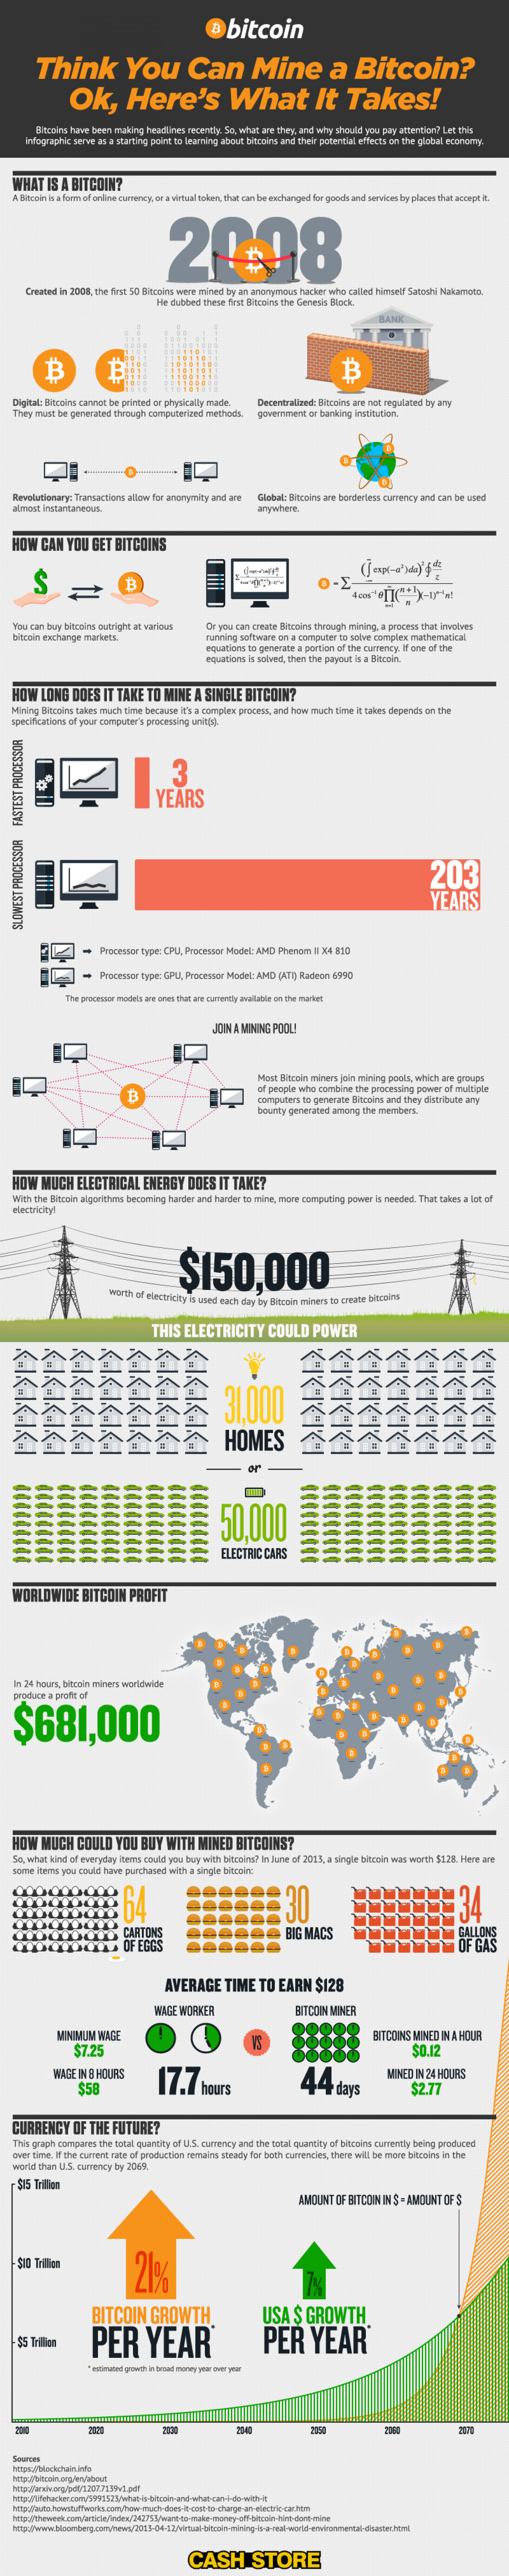 Think You Can Mine Bitcoin? Ok, Here's What It Takes! Infographic